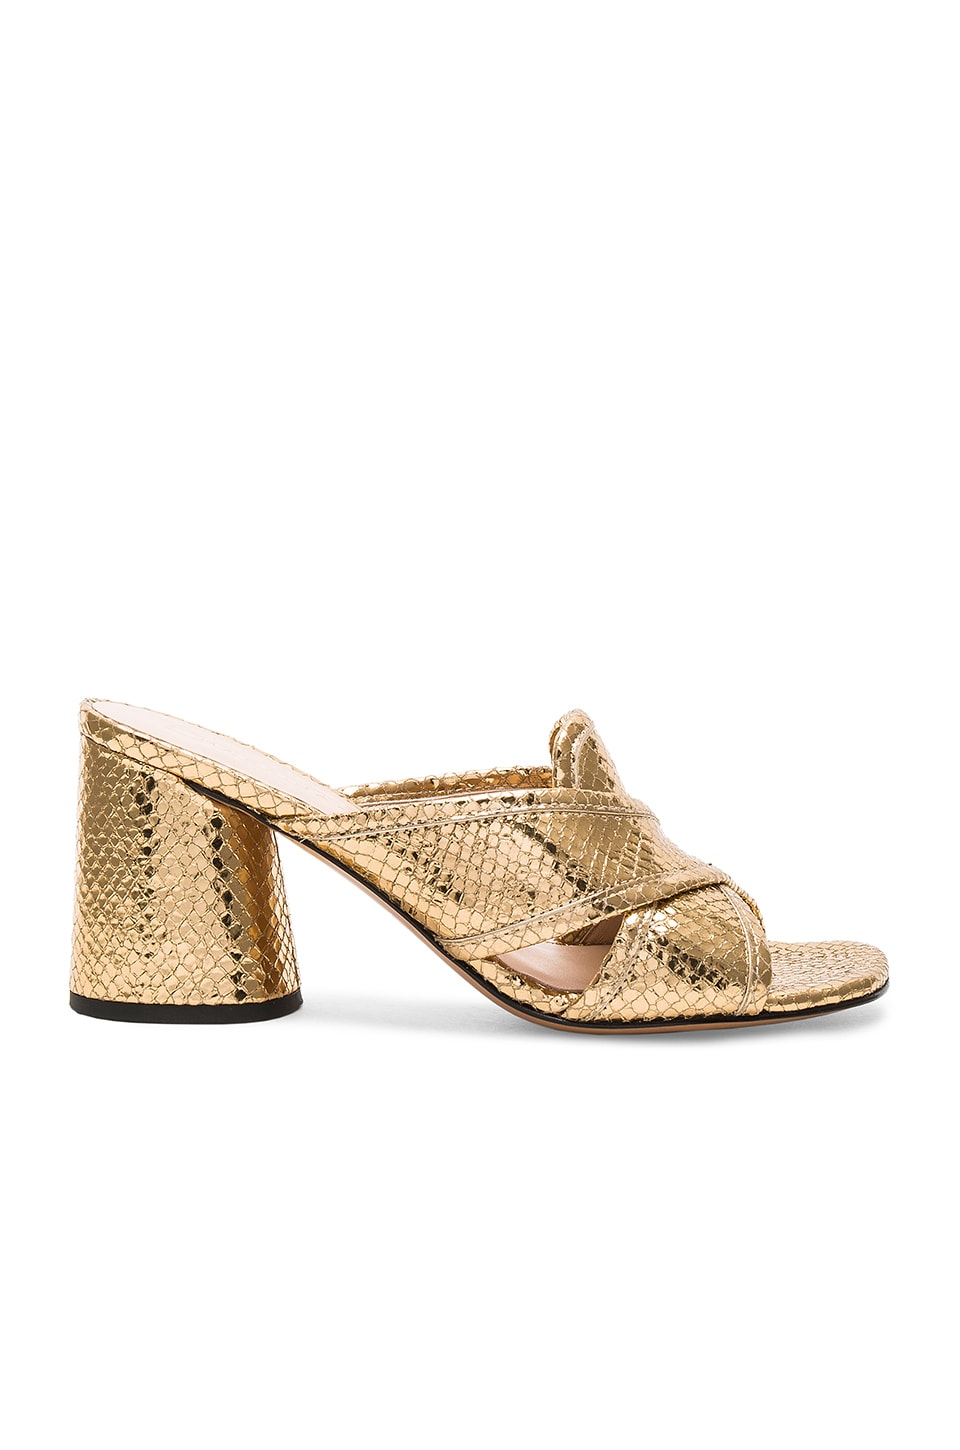 Marc Jacobs Aurora Mule in Gold